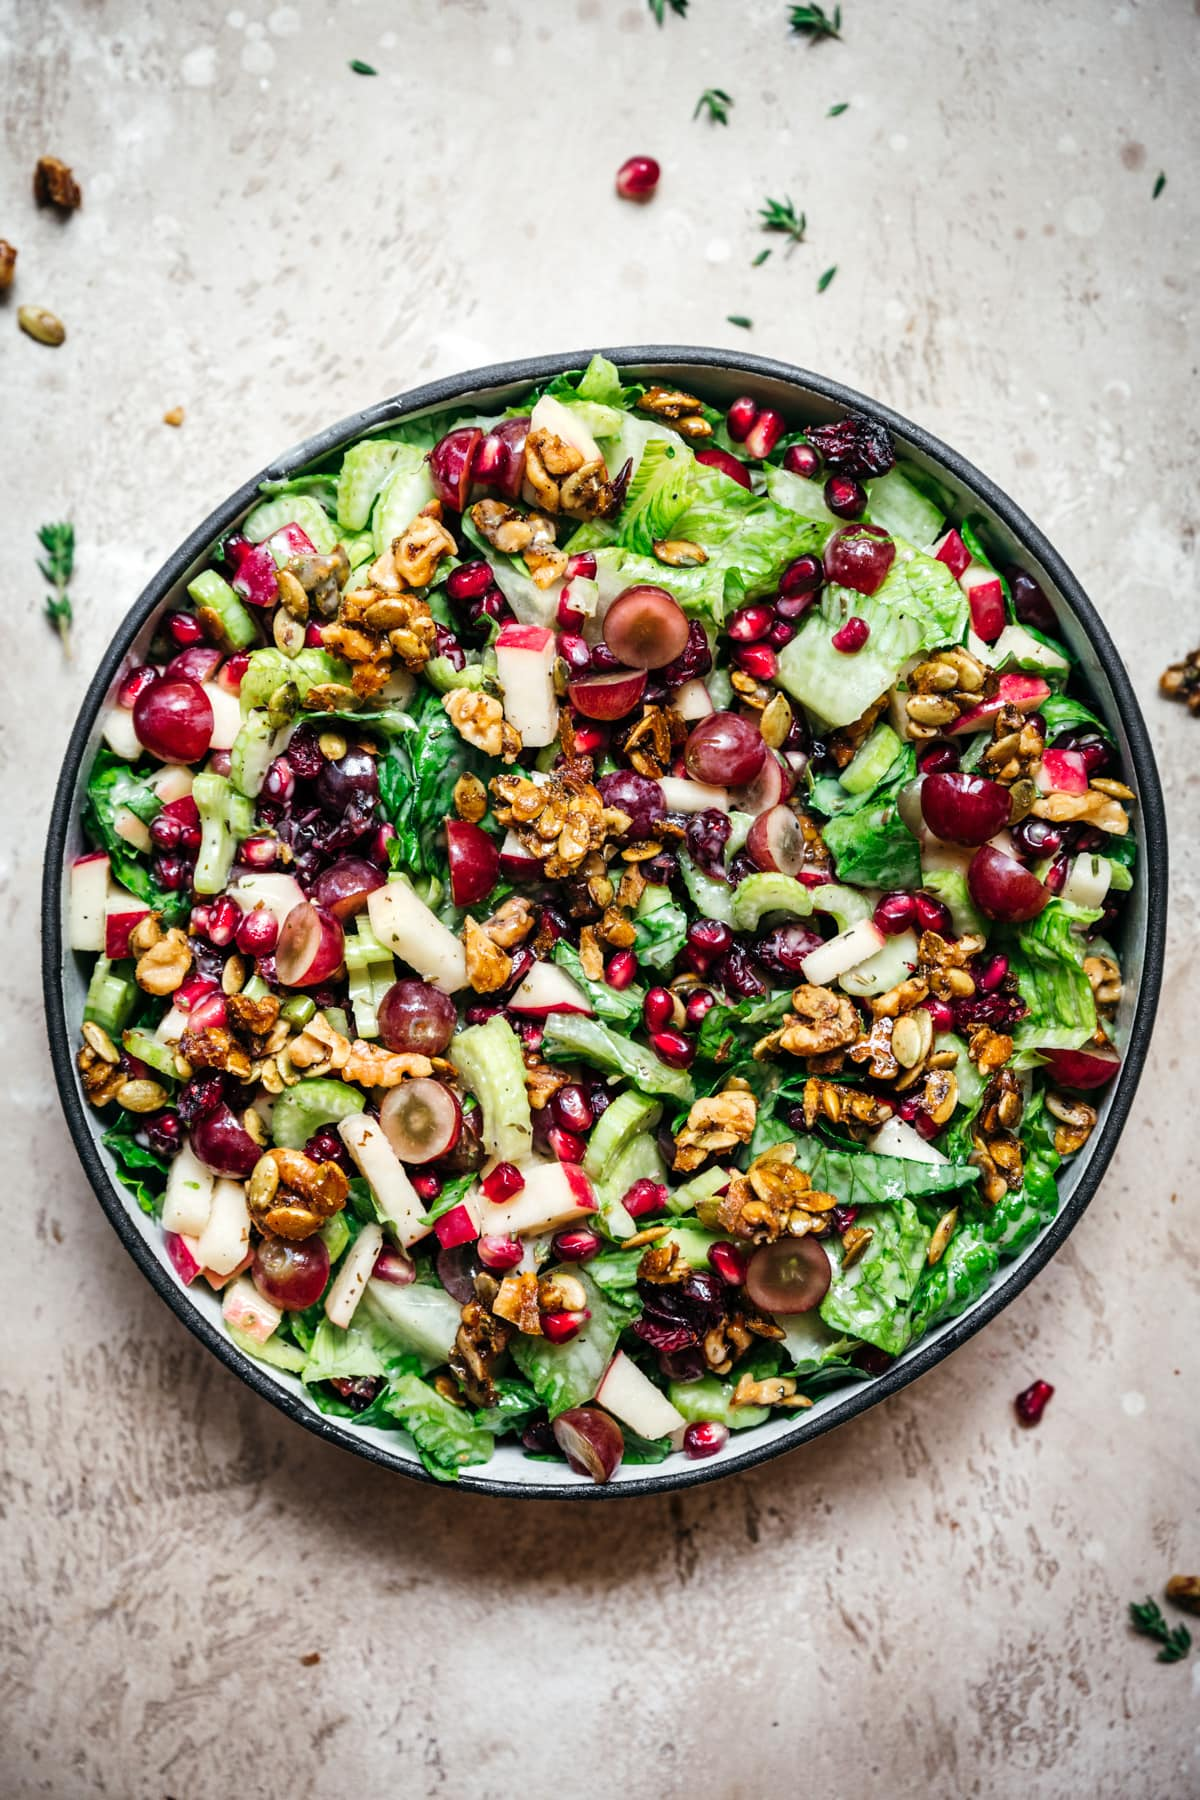 overhead view of vegan waldorf salad with walnut brittle and pomegranate in a bowl.